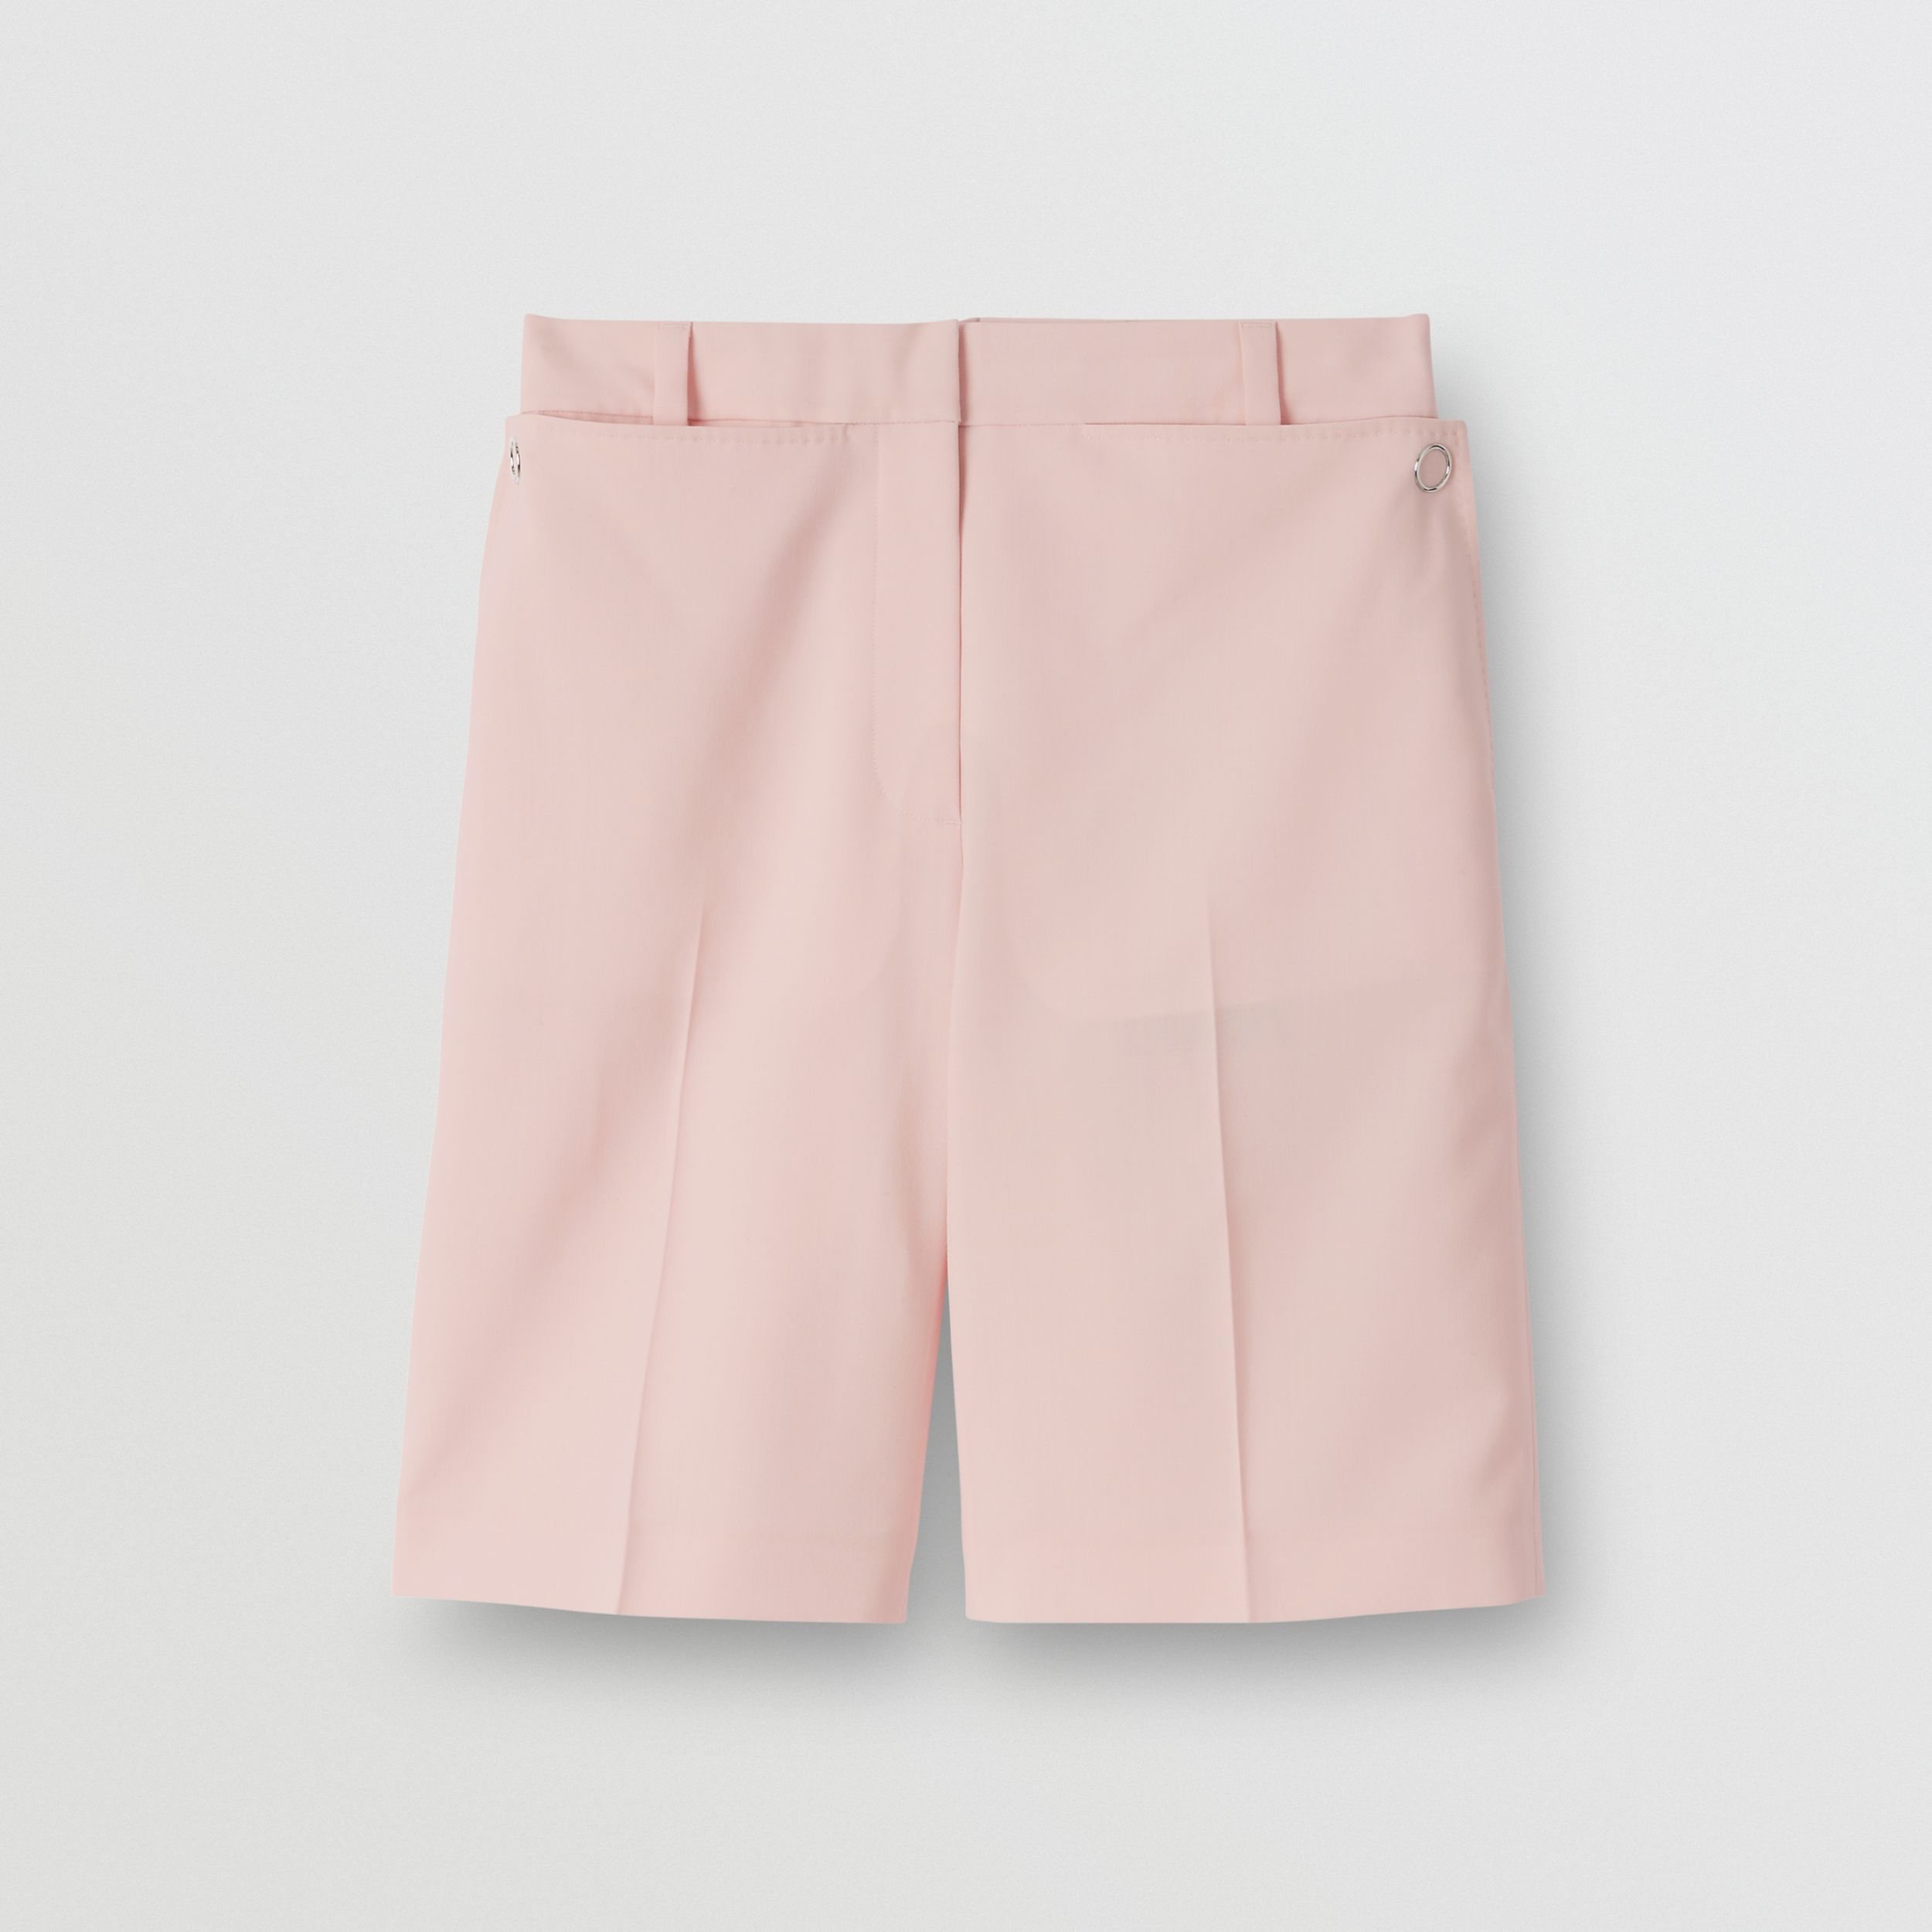 Pocket Detail Tumbled Wool Tailored Shorts in Soft Pink - Women | Burberry - 4